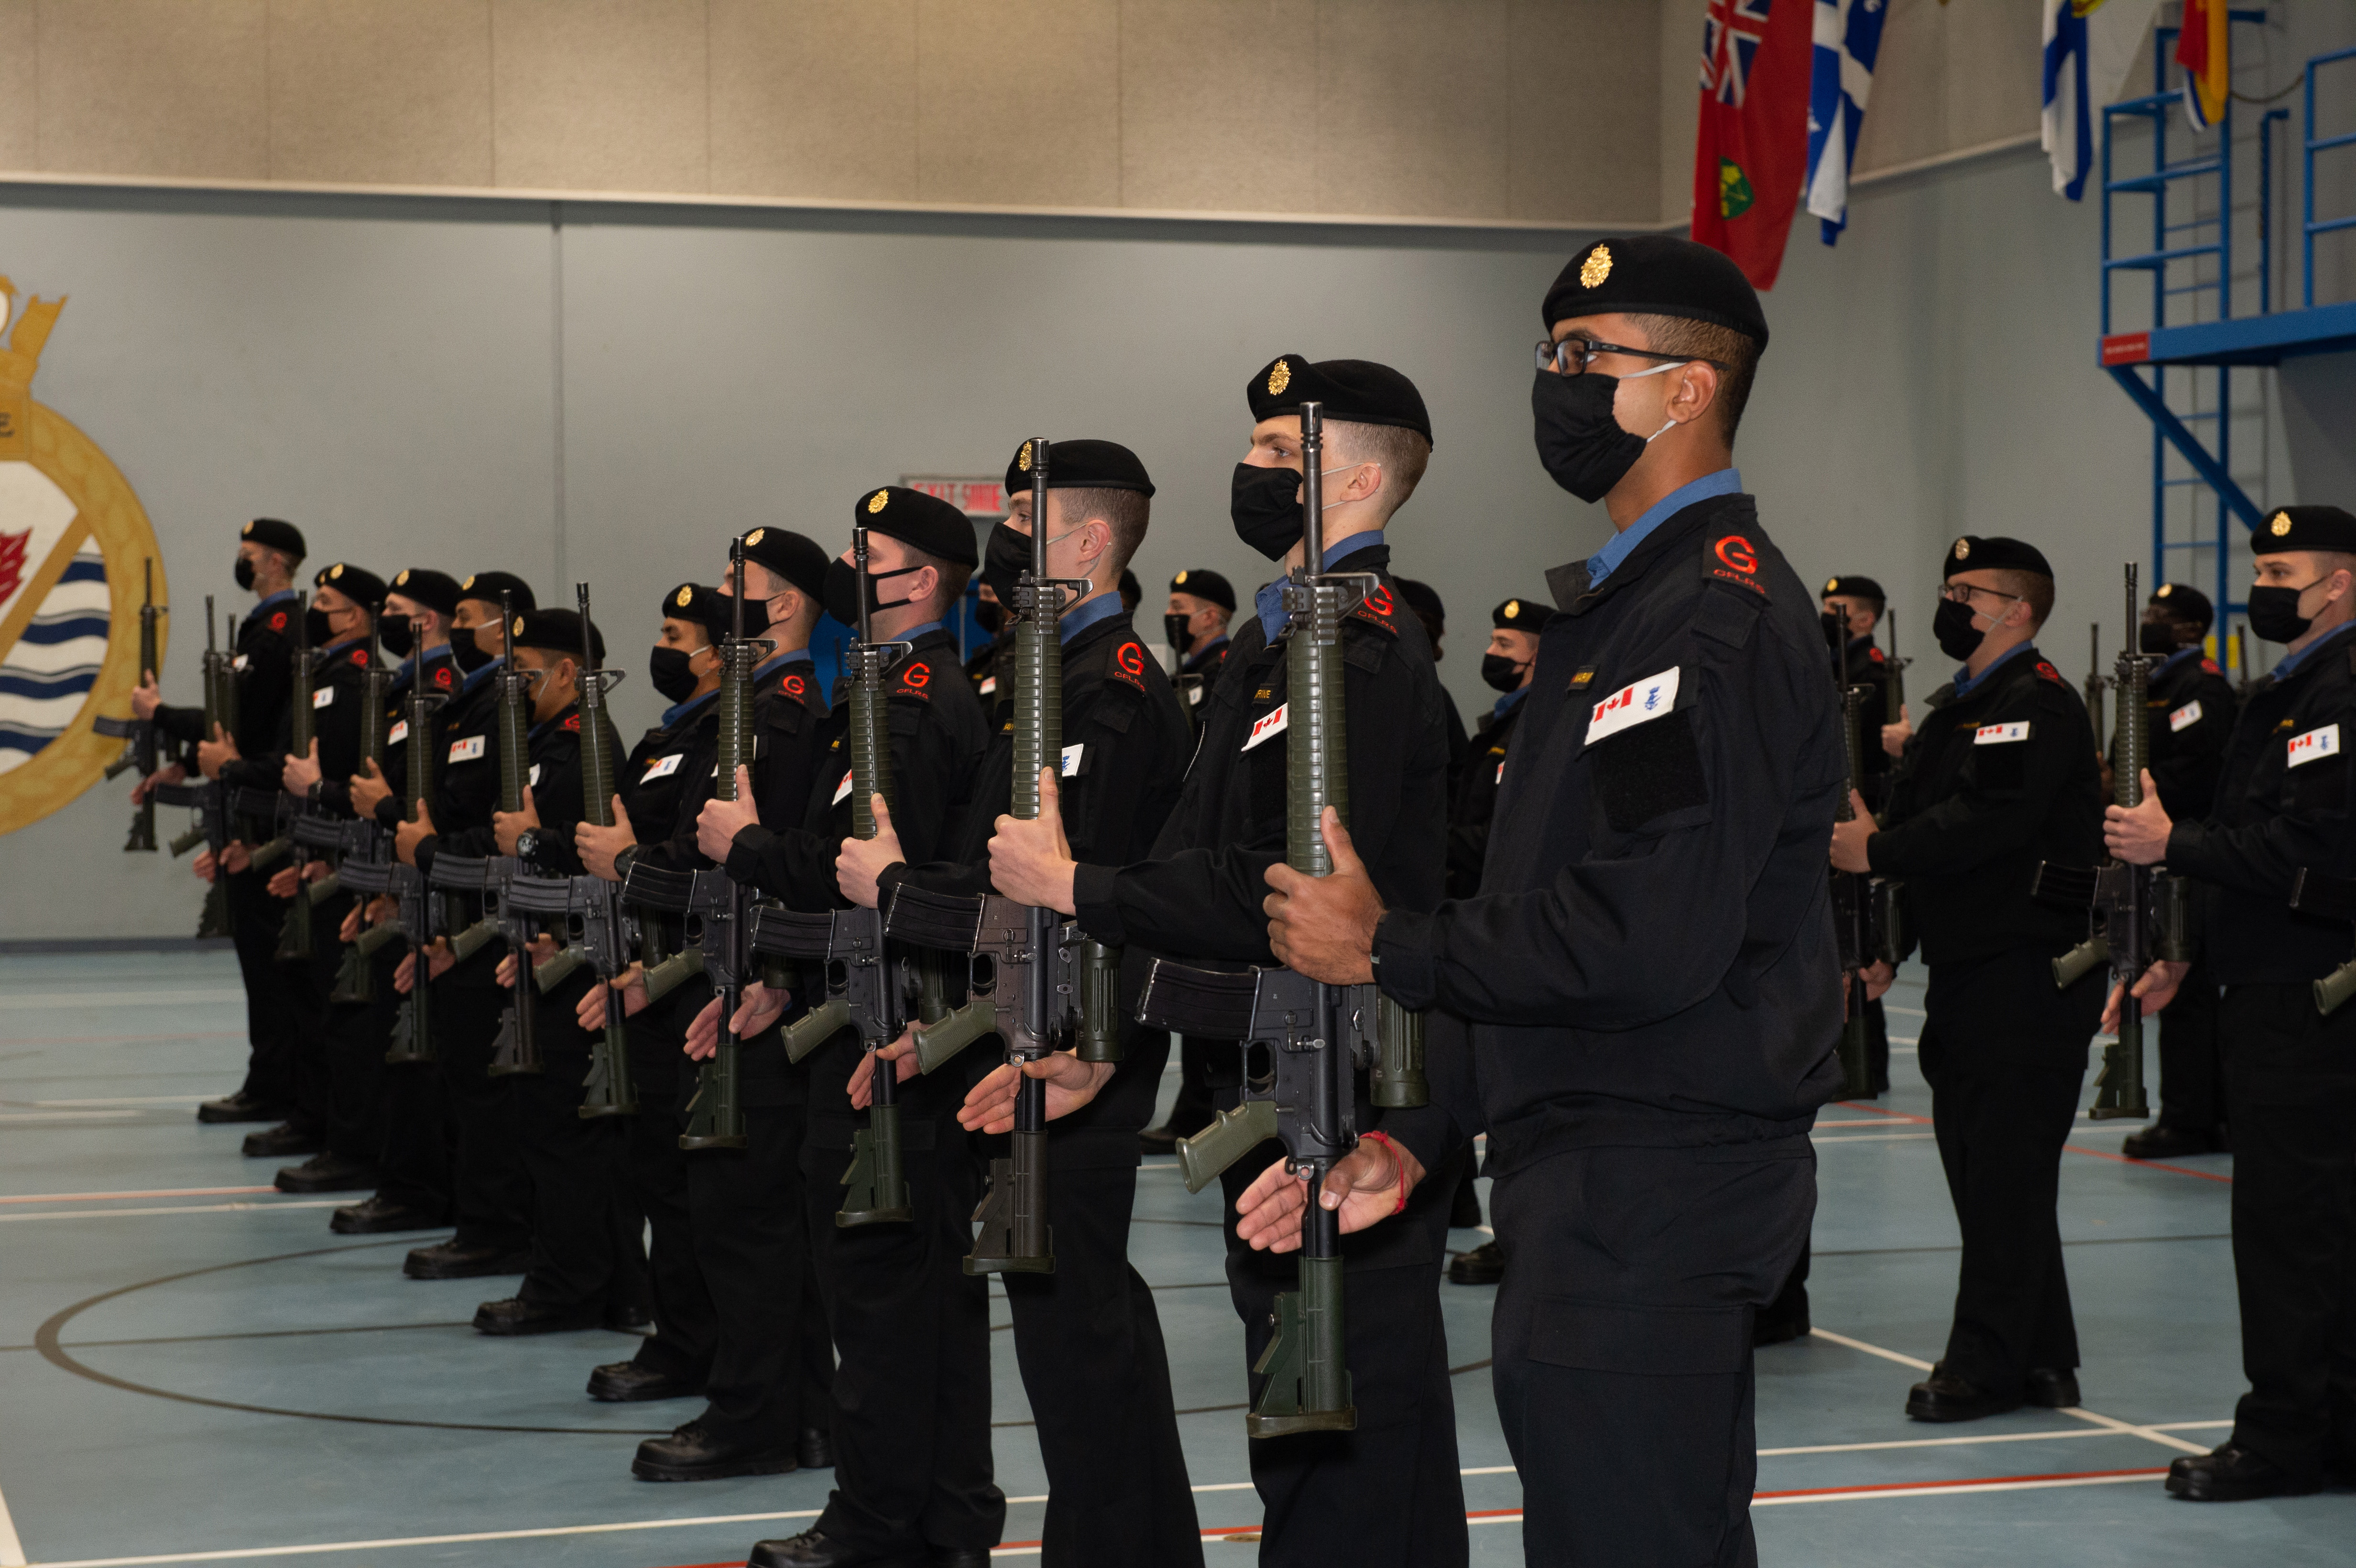 Recruits graduate from the East Coast De-centralized Basic Military Qualification training.